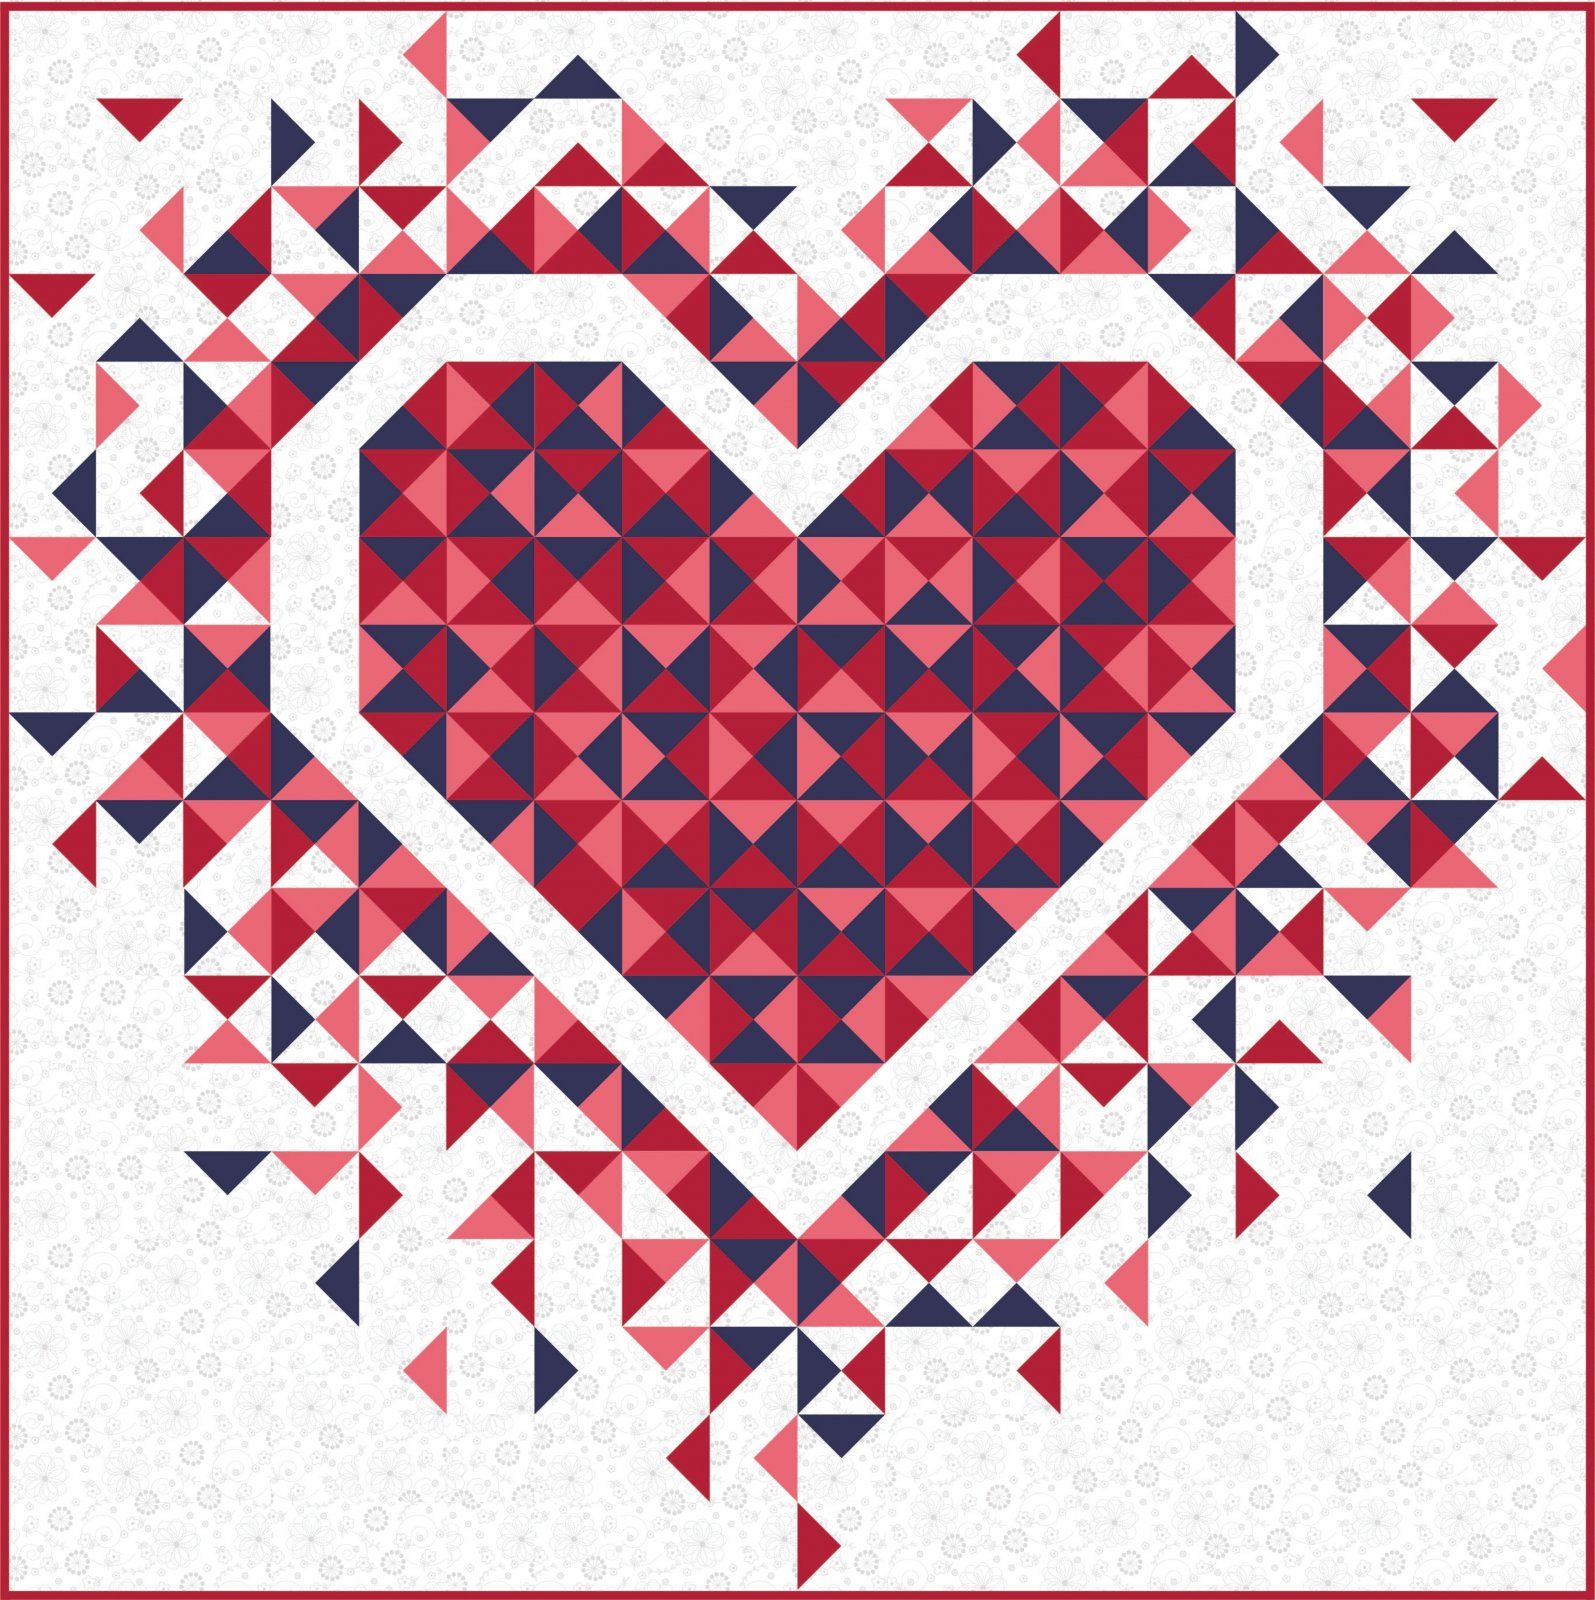 EESC-SPQ332 - EXPLODING HEART QUILT PATTERN BY SLICE OF PI QUILTS